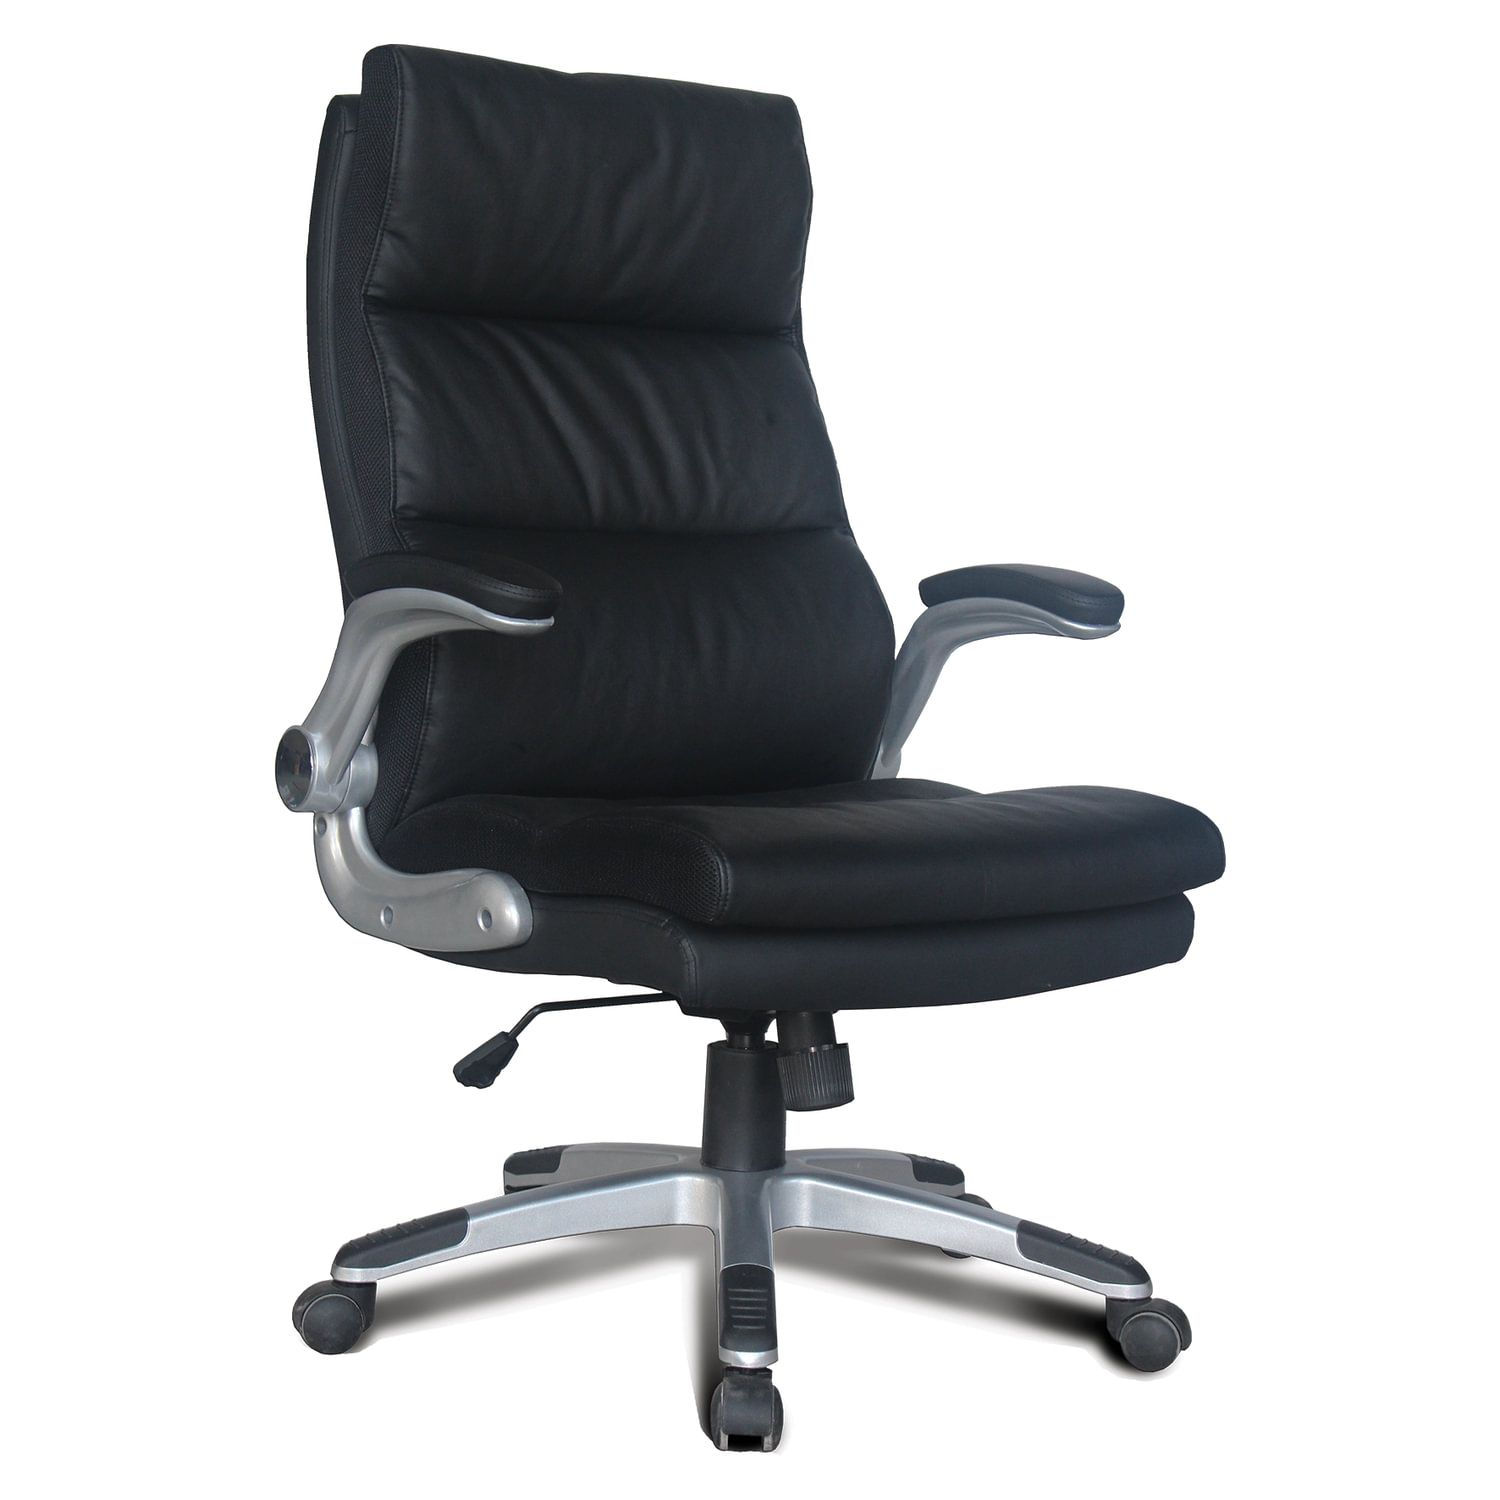 """Office chair BRABIX """"Fregat EX-510"""", recycled leather, black"""